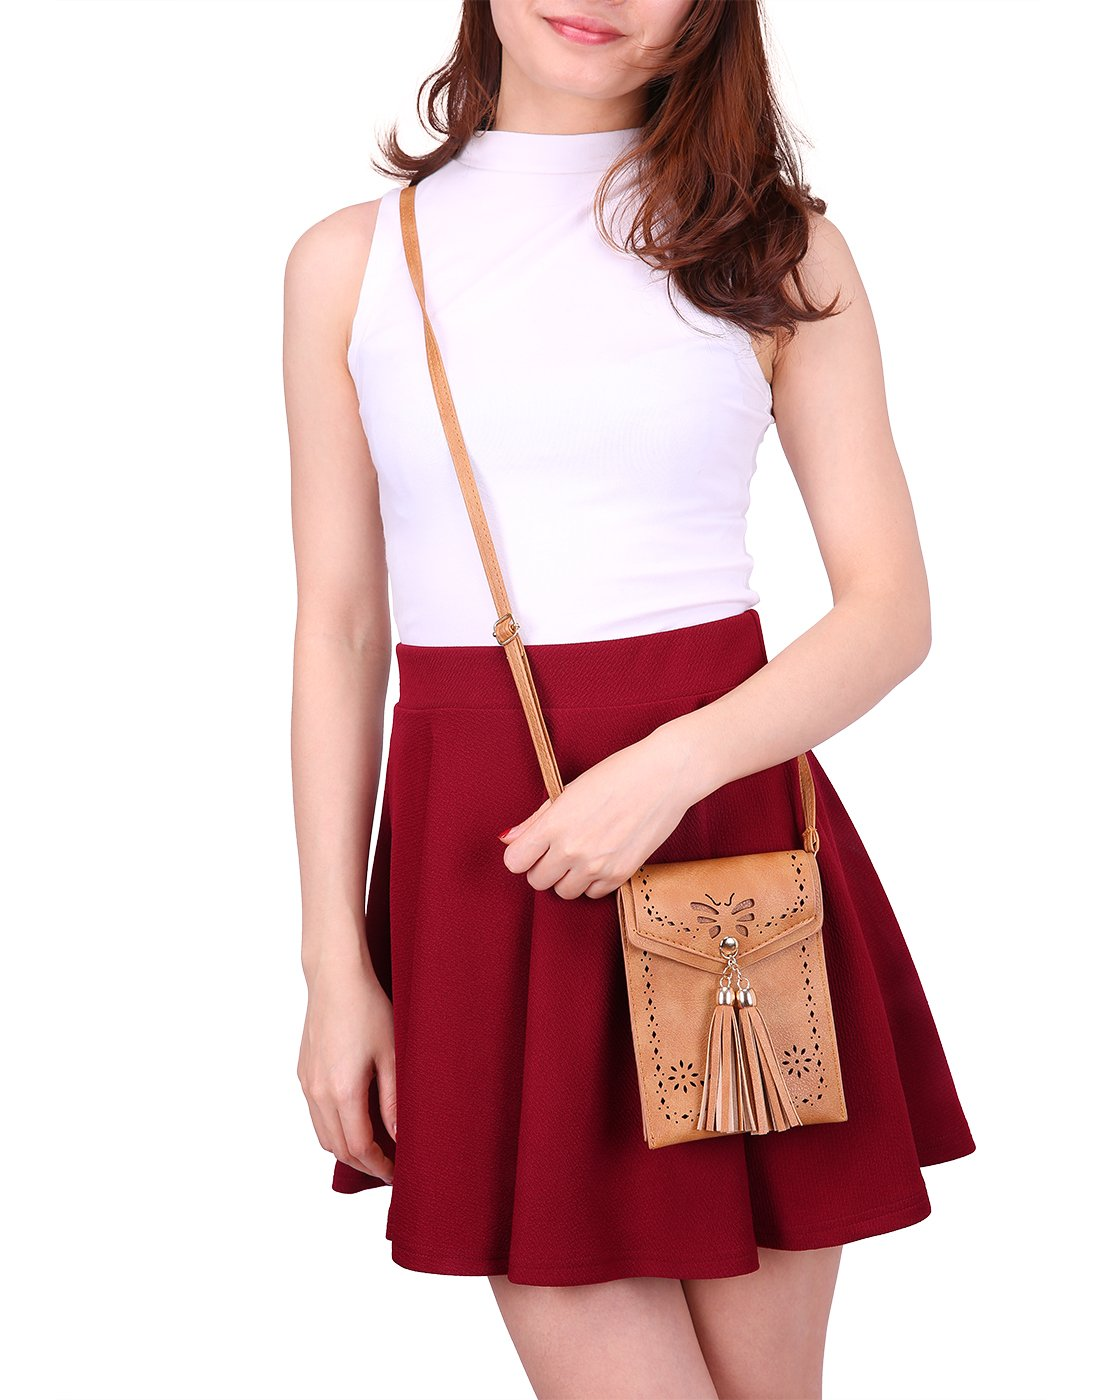 HDE Small Crossbody Pouch Purse Tassel Travel Phone Wallet Vintage Leather Bags (Brown) by HDE (Image #5)